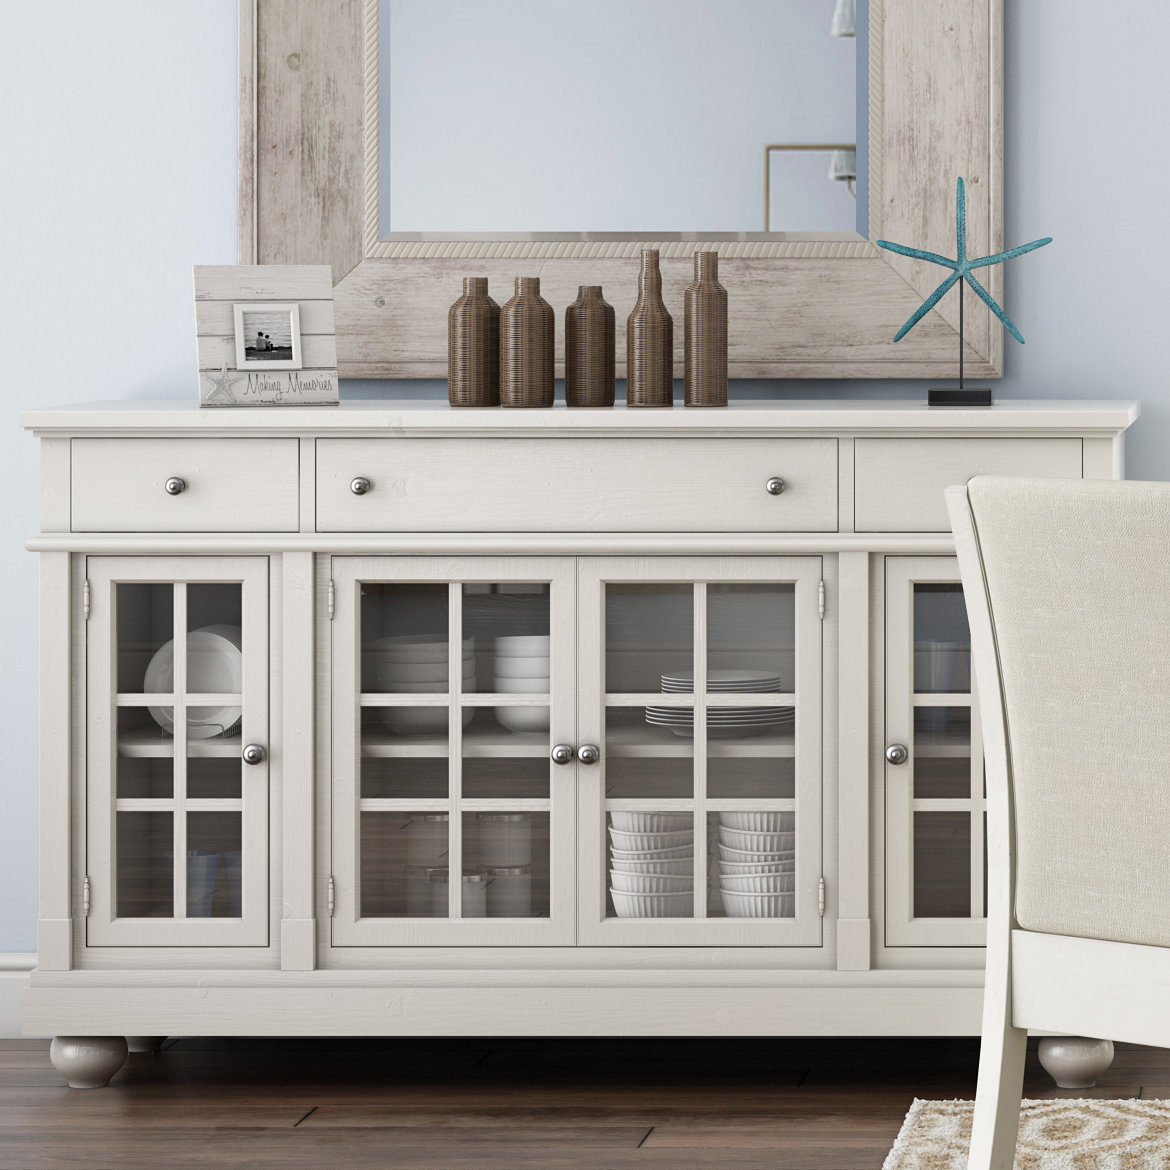 Farmhouse & Rustic Sideboards & Buffets | Birch Lane With Regard To Palisade Sideboards (View 9 of 30)